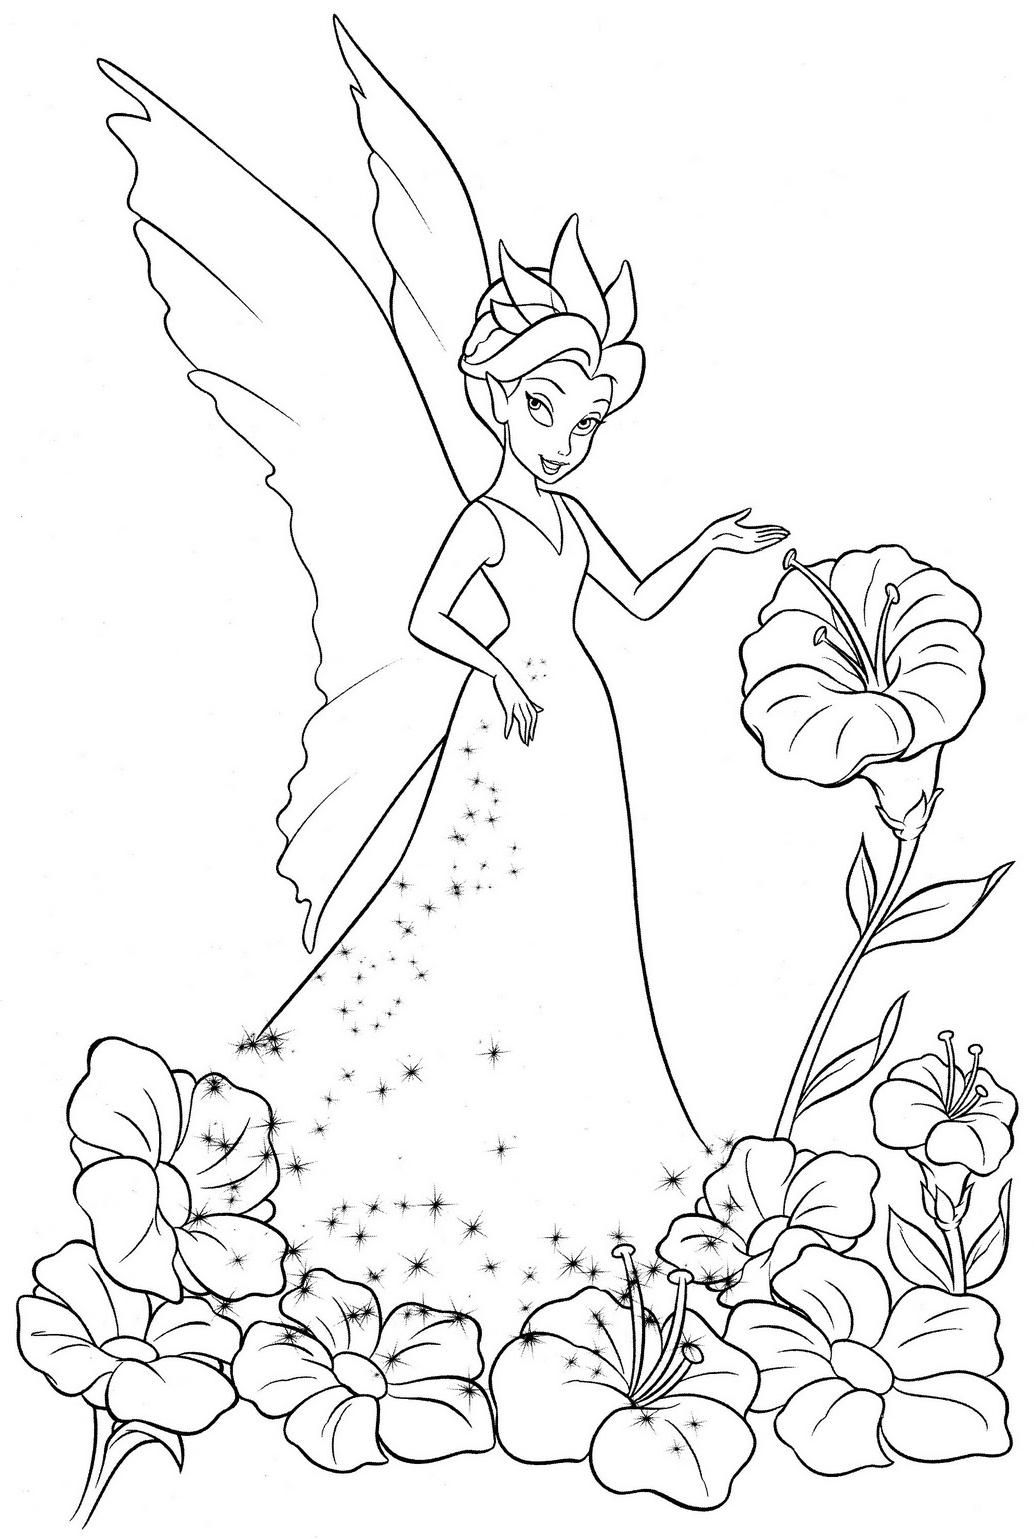 Tinkerbell Und Das Geheimnis Der Feenflügel Ausmalbilder : Coloring Pages Of Tinkerbell And Friends Coloring Pages